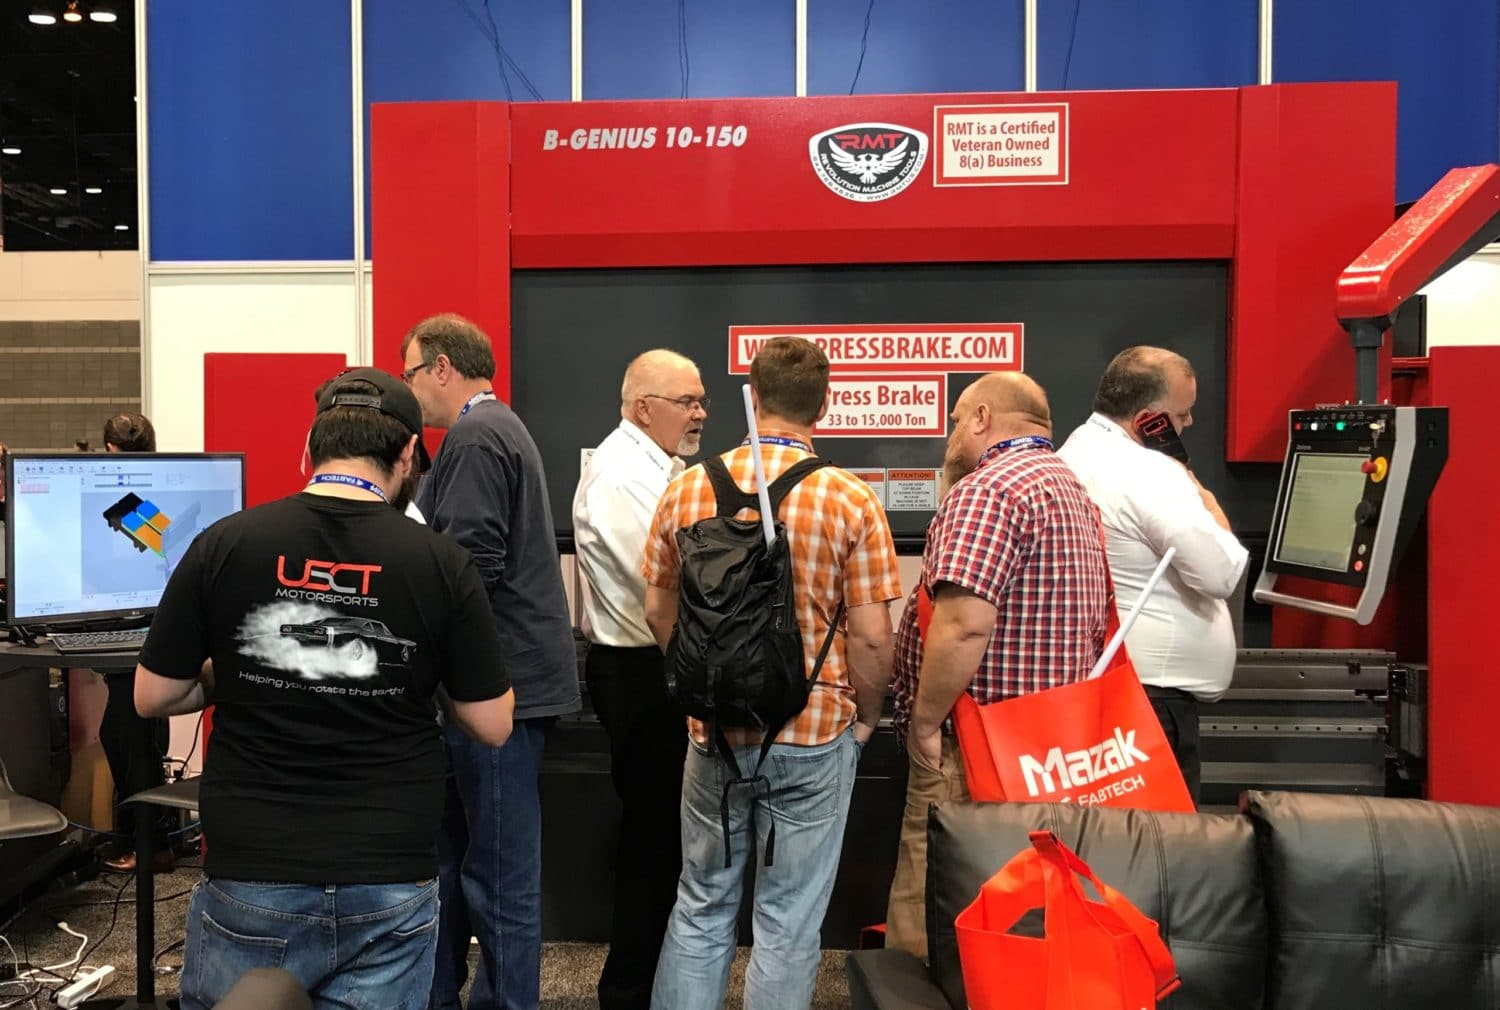 How to Buy a Press Brake